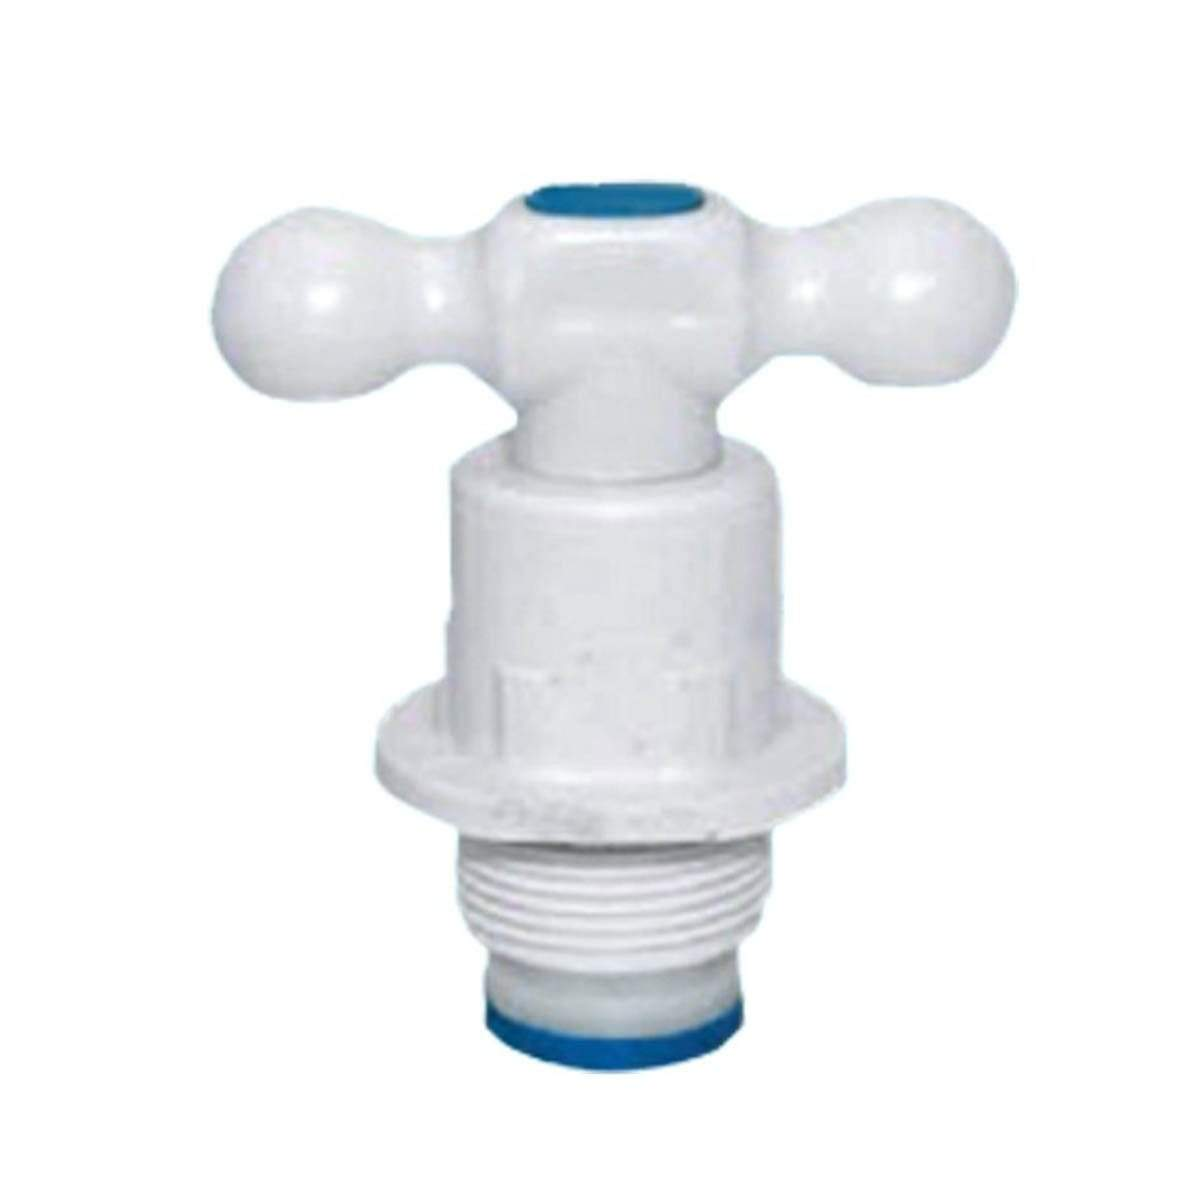 "WATERTEC 1/2"" Top Asy (Fine Thread) WT12F/T15FS"